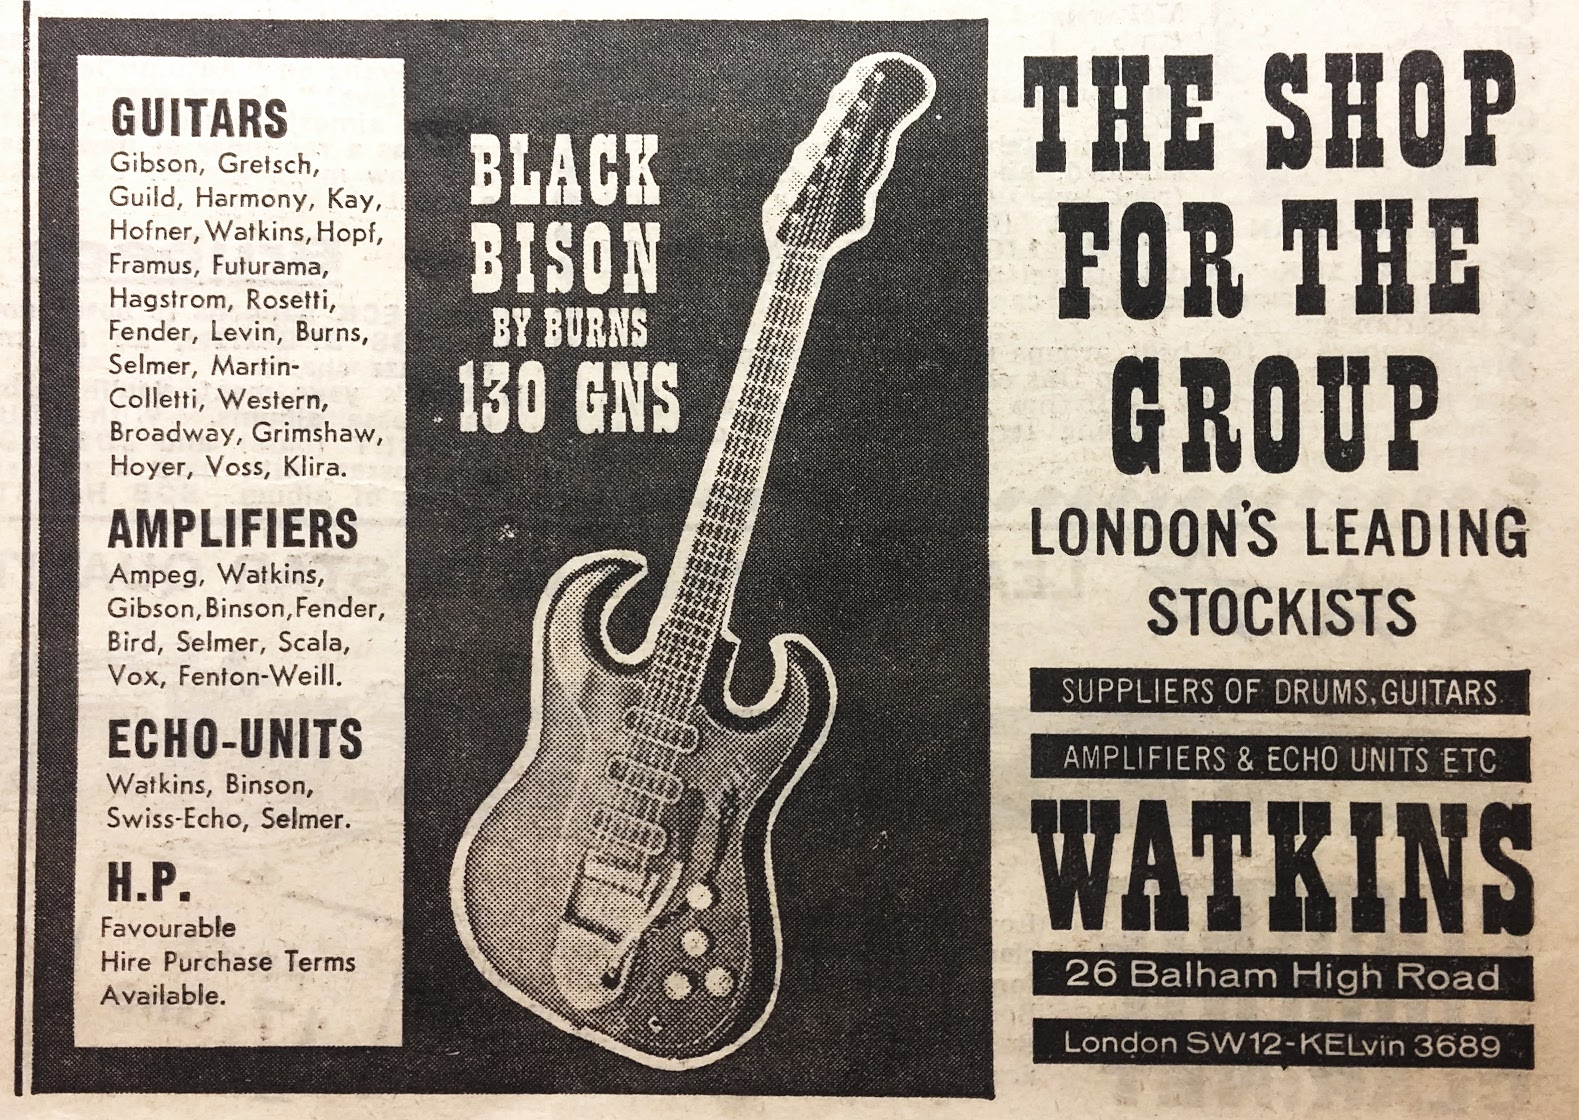 Burns Black Bison Guitar Bass Reference Page Framus Wiring Diagram Watkins Advert